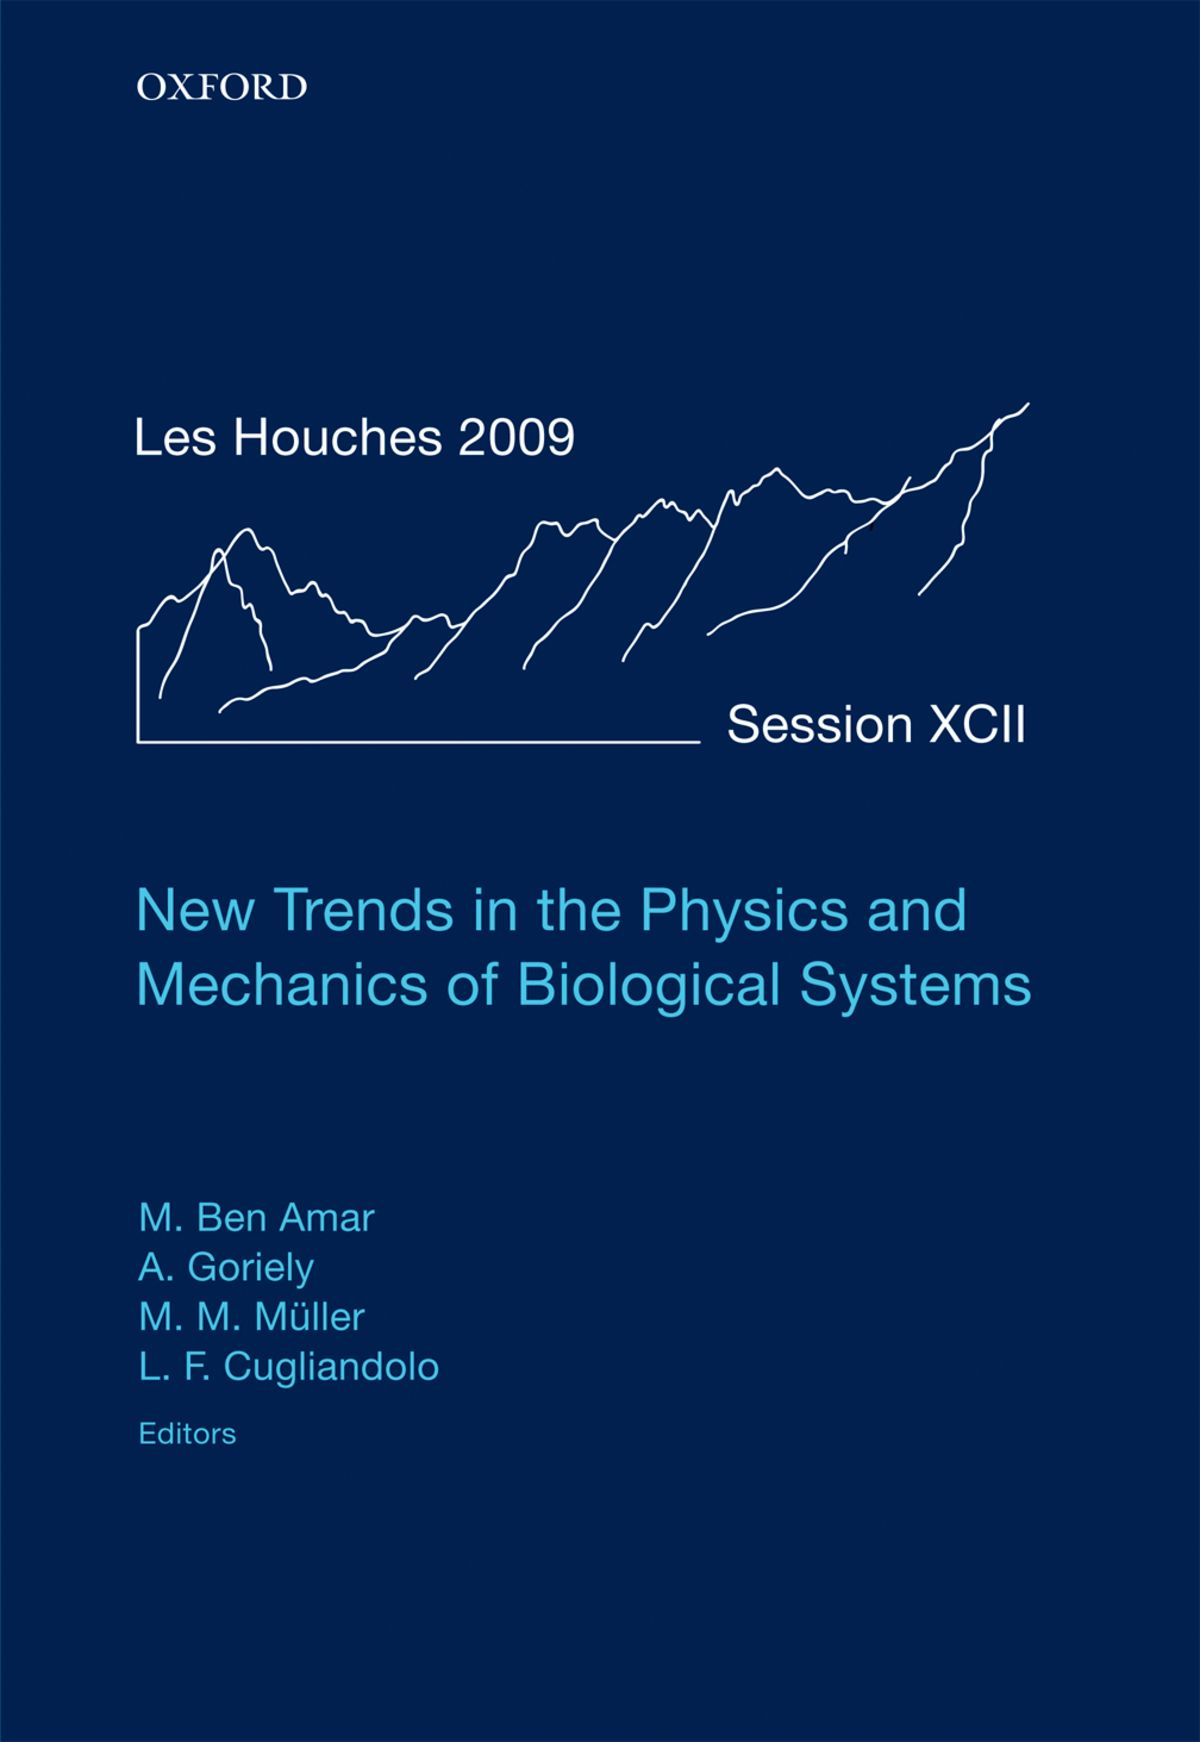 New Trends in the Physics and Mechanics of Biological Systems: Lecture Notes of the Les Houches Summer School: Volume 92,  July 2009